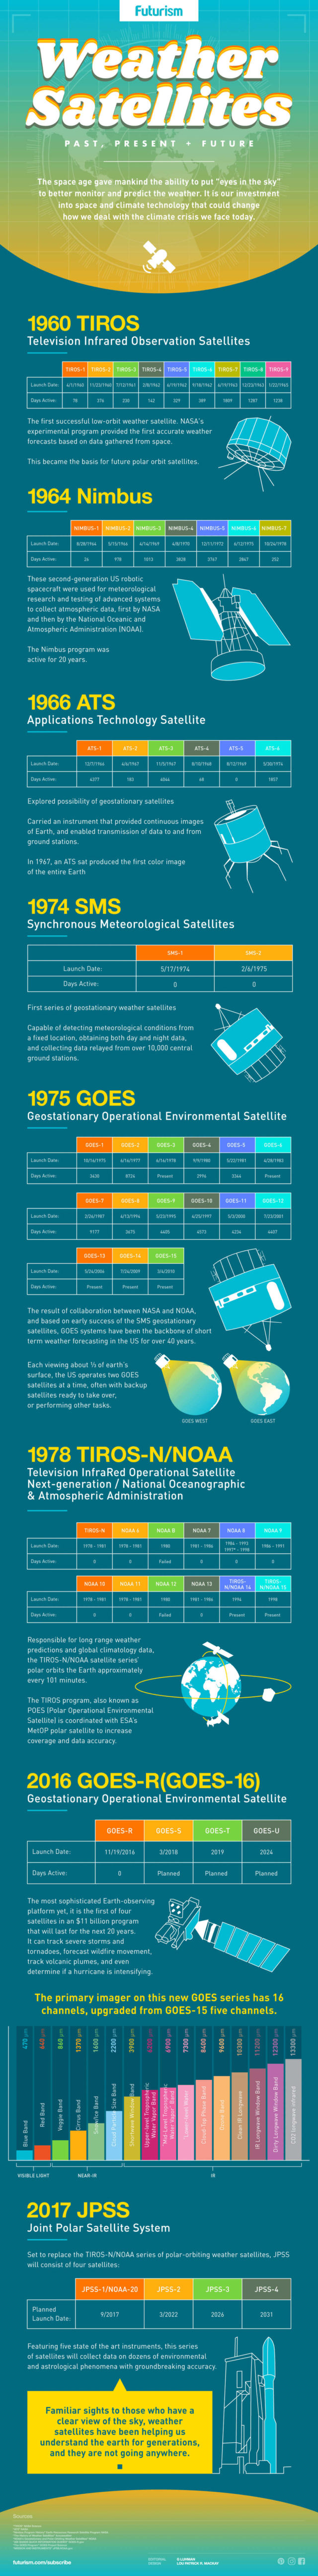 Weather Satellites - infographic